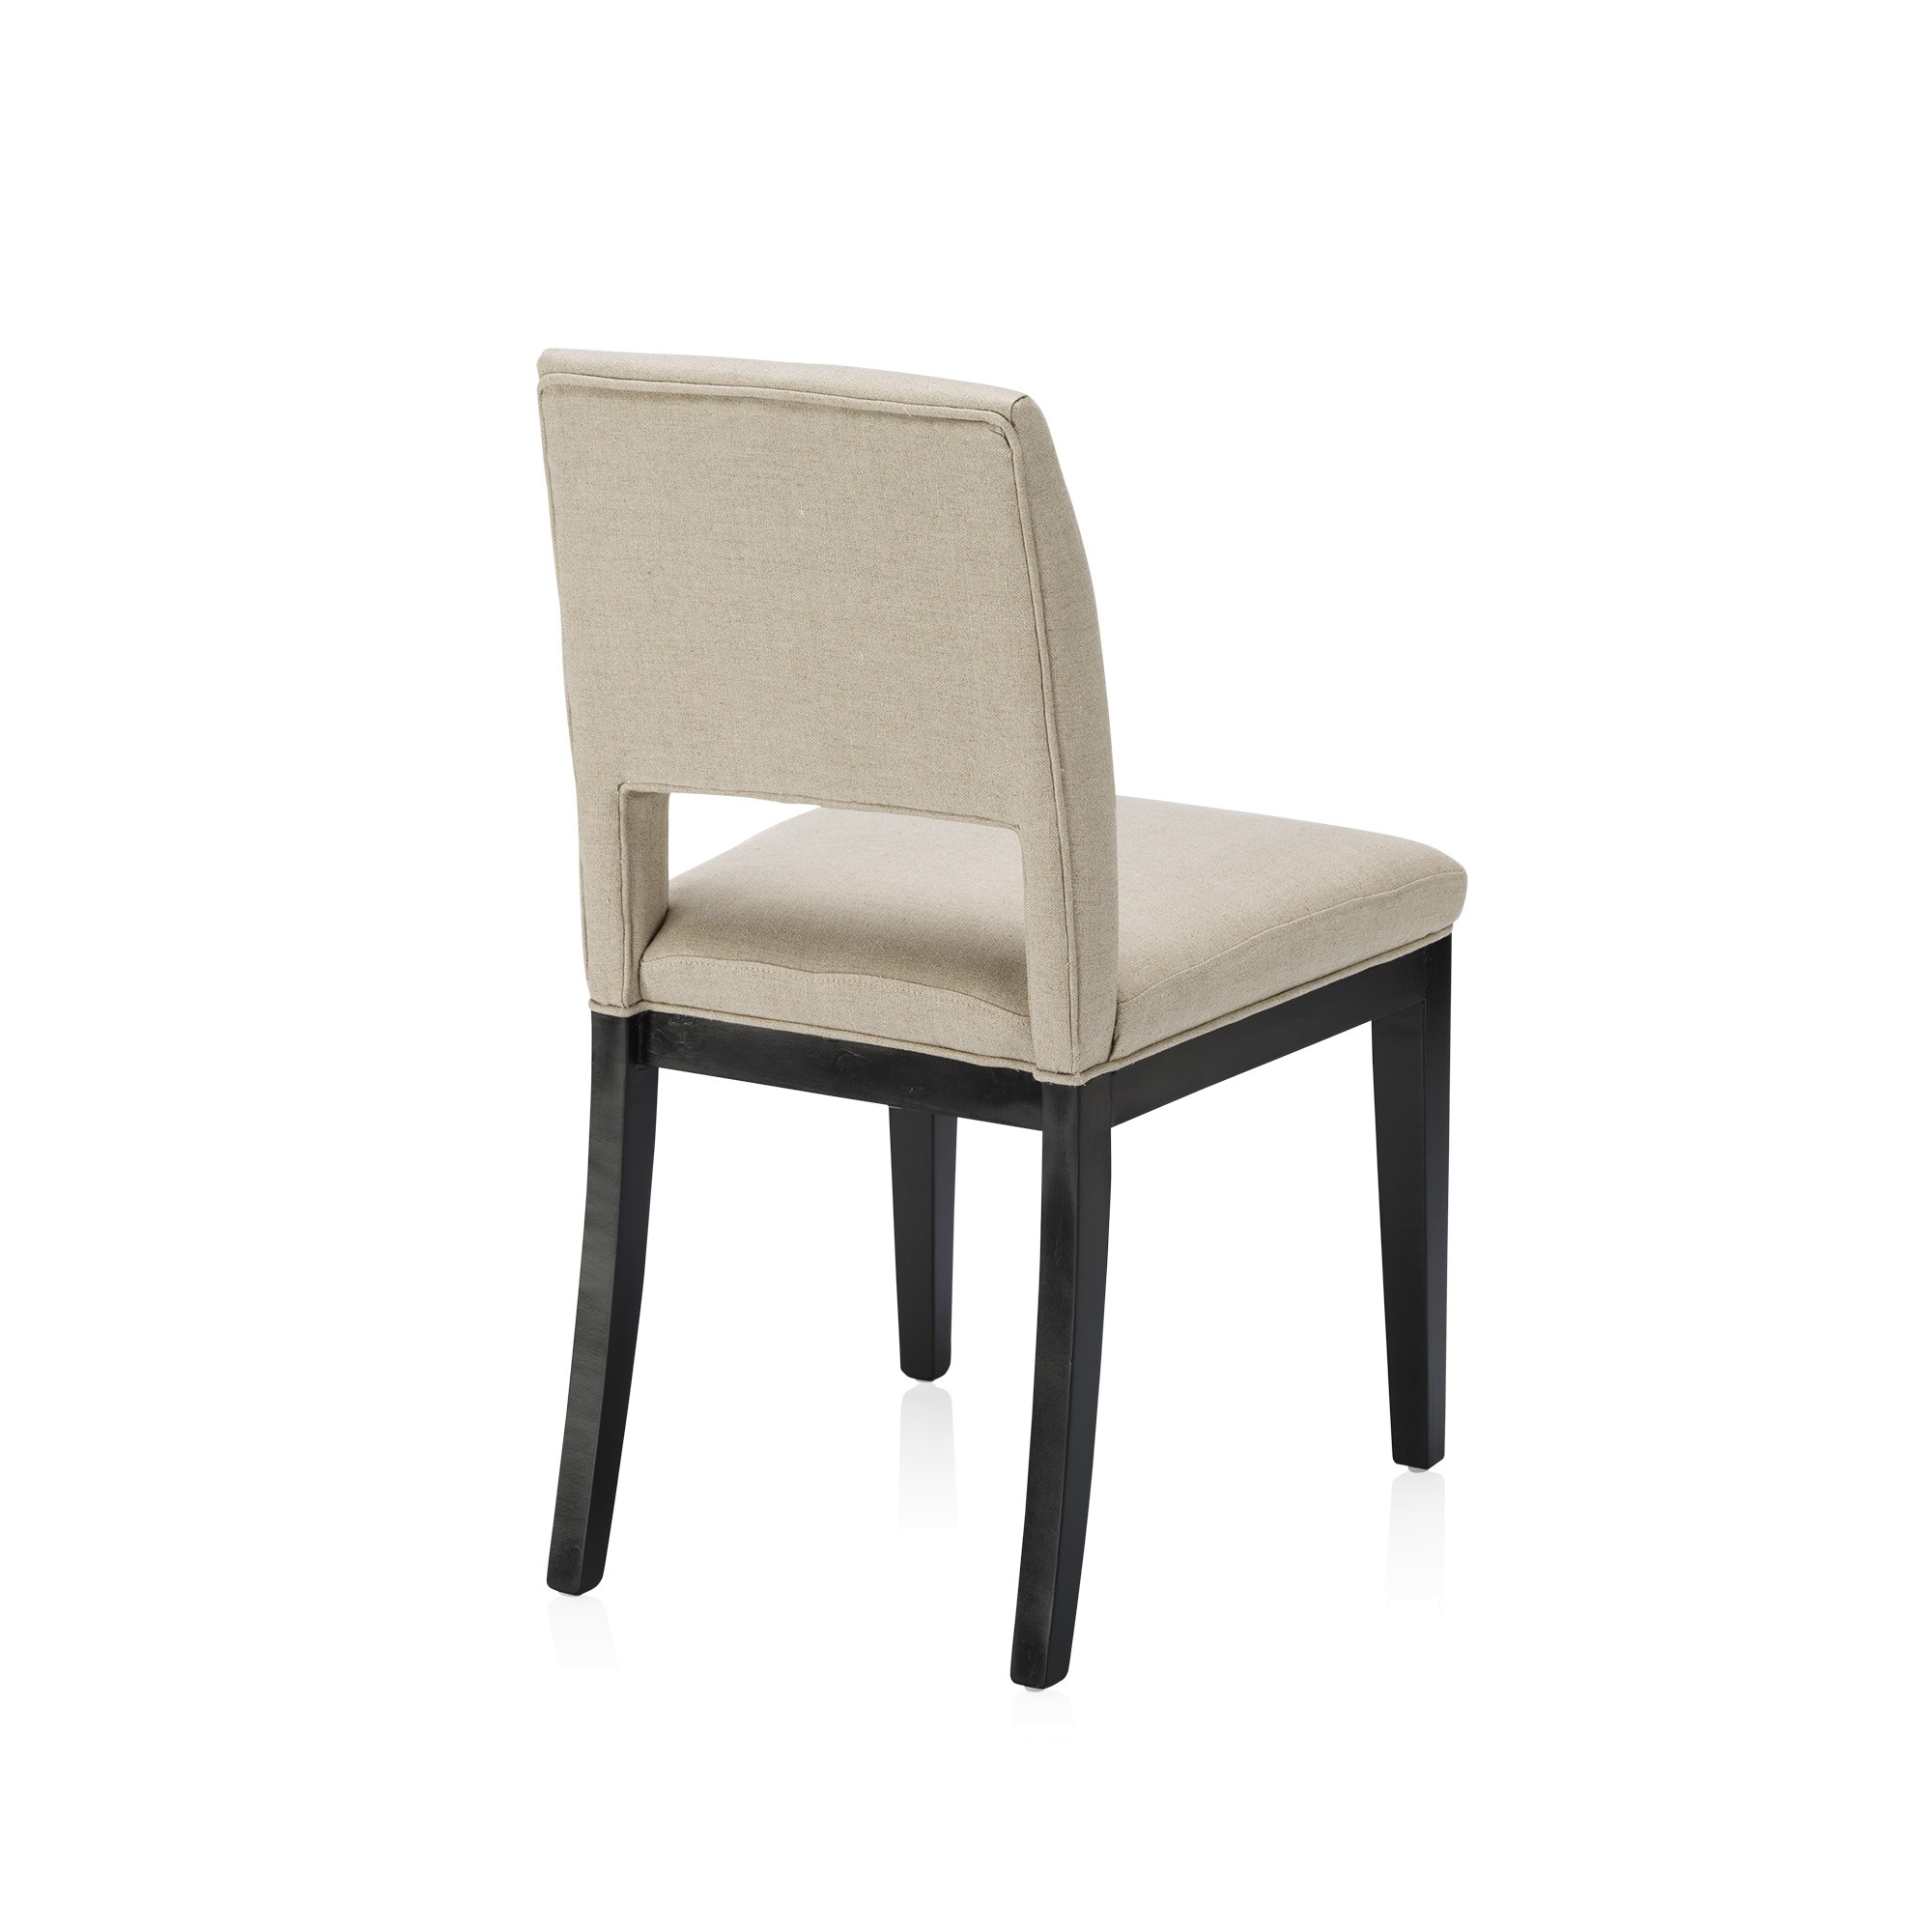 Bowery Dining Chair Regarding Preferred Bowery Ii Side Chairs (#1 of 20)